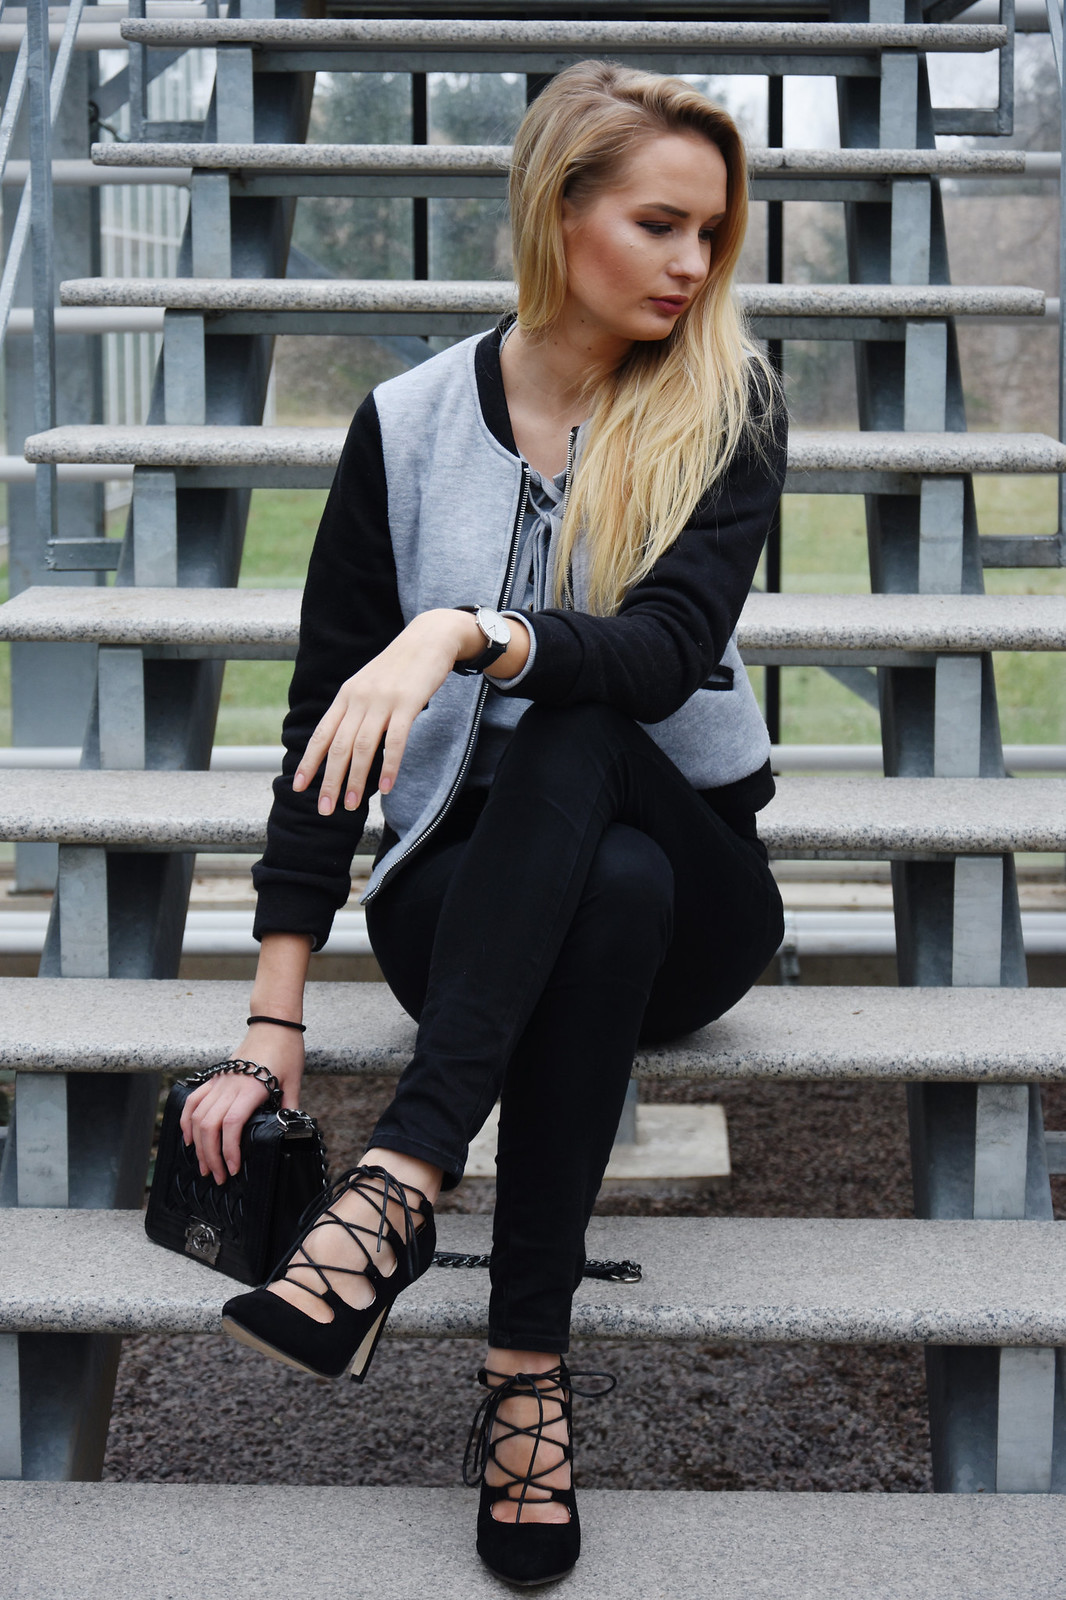 Lace up heels outfit